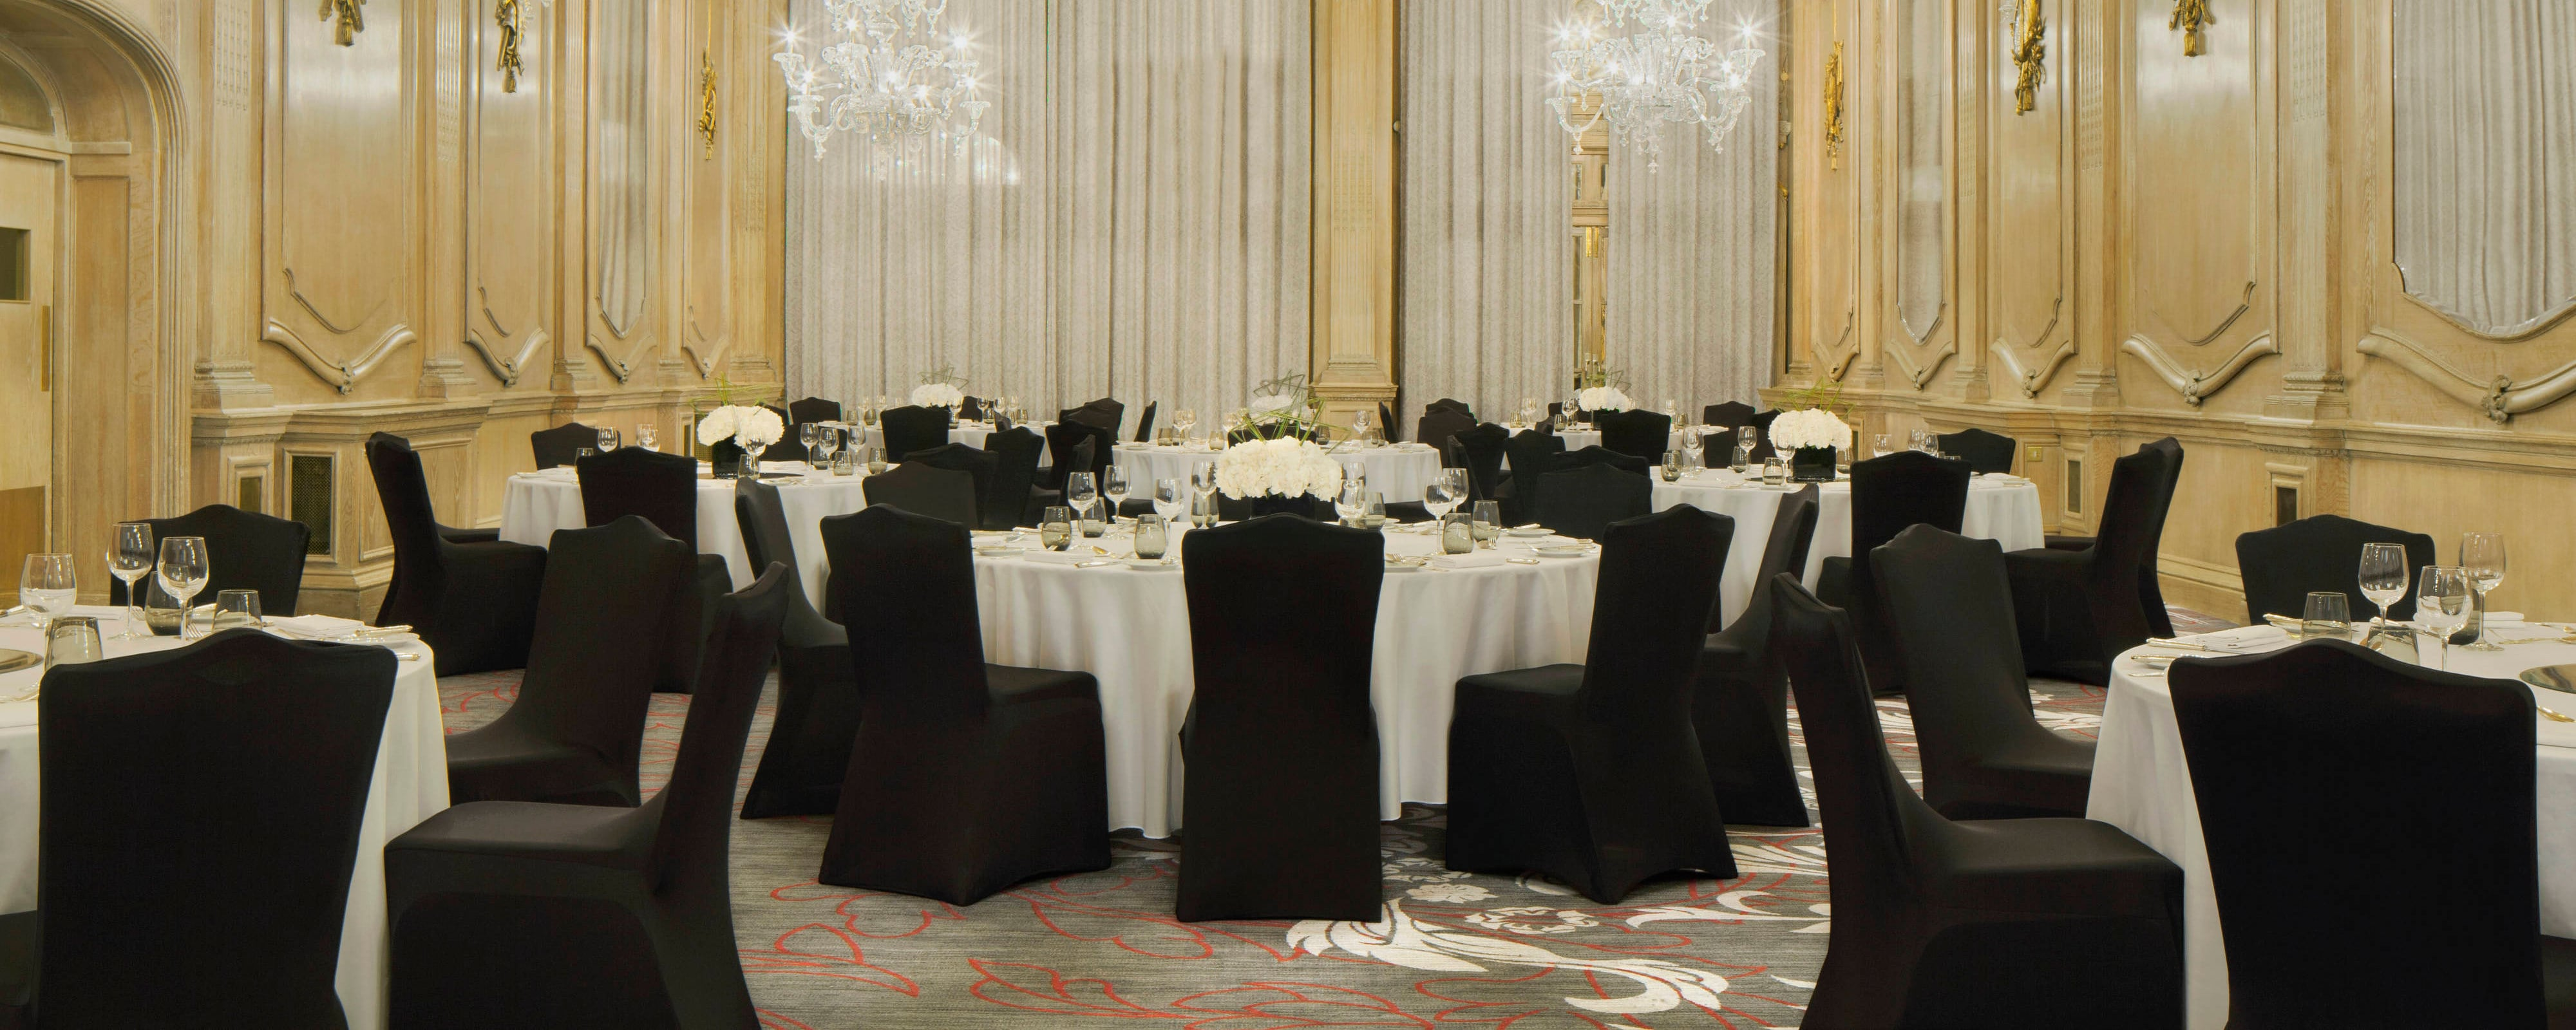 Oak Room - Banquet